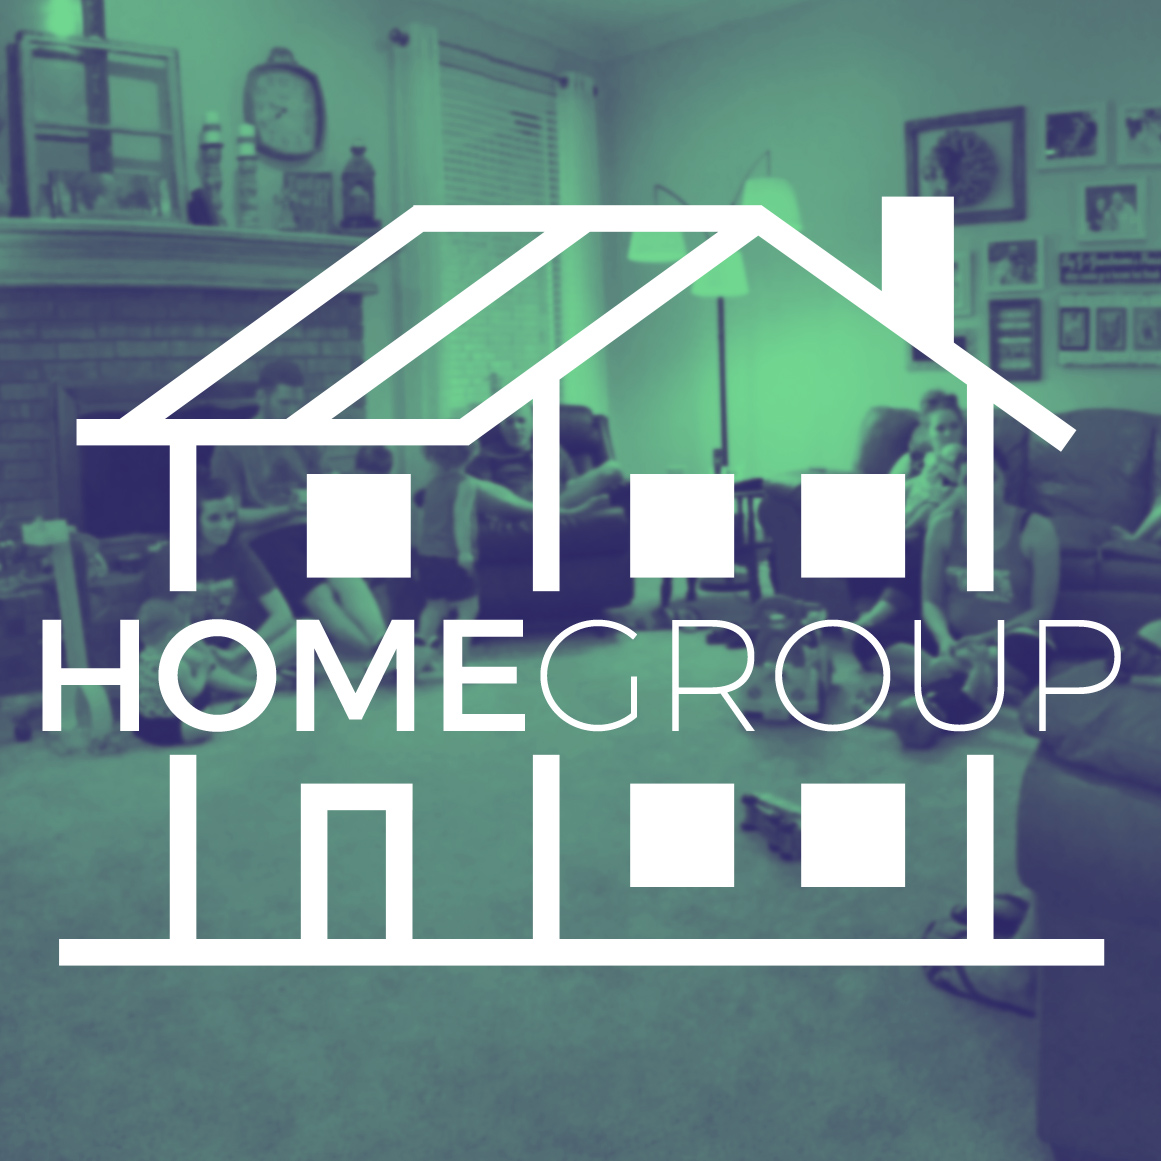 Home Group copy.jpg